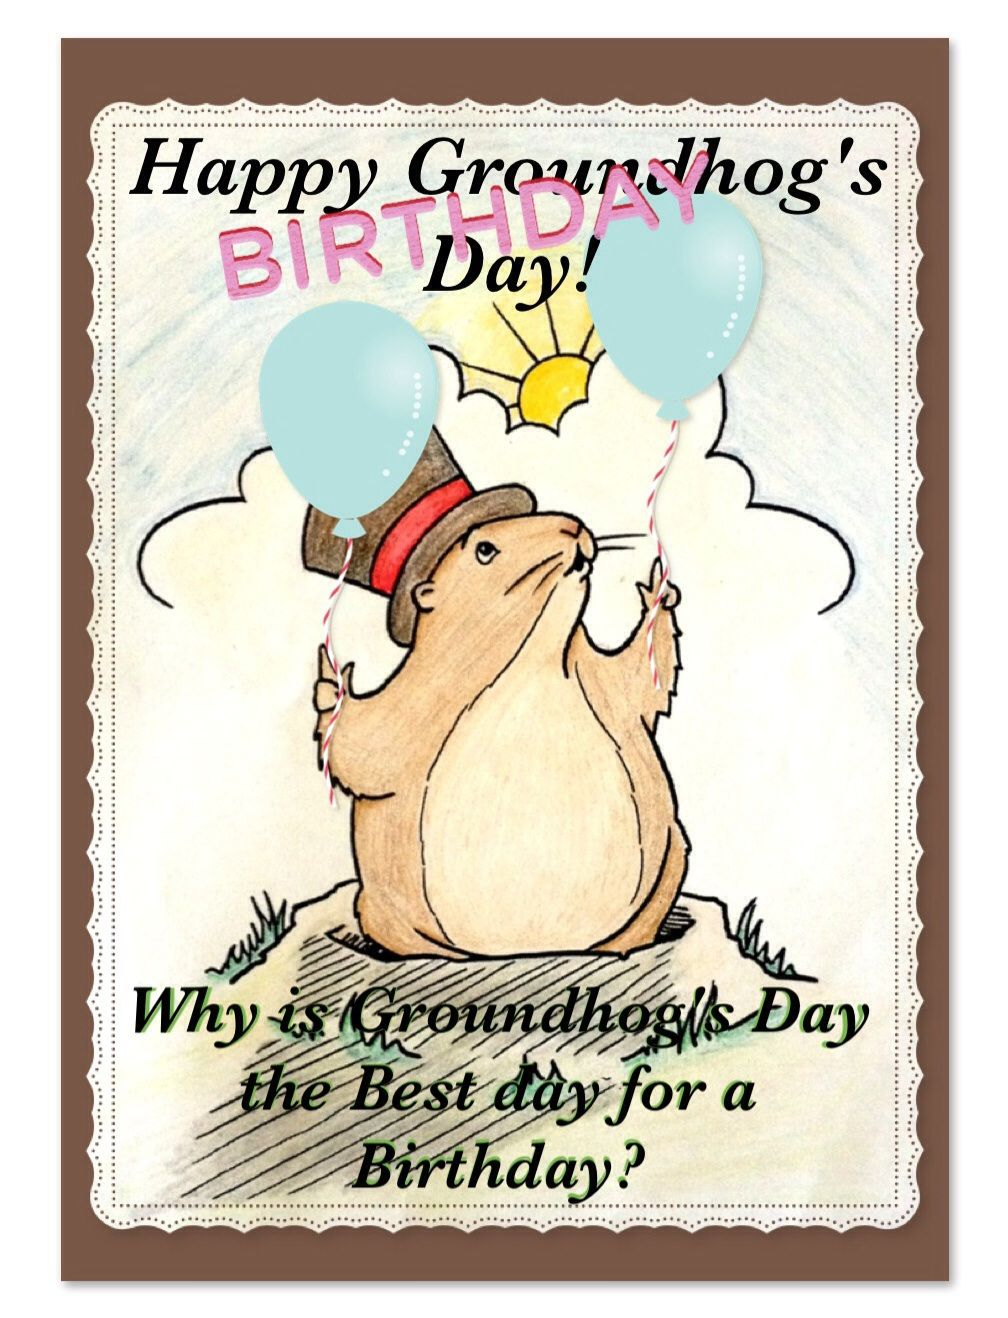 Happy groundhogs day birthday card front why is groundhogs day happy groundhogs day birthday card front why is groundhogs day the best day for m4hsunfo Choice Image